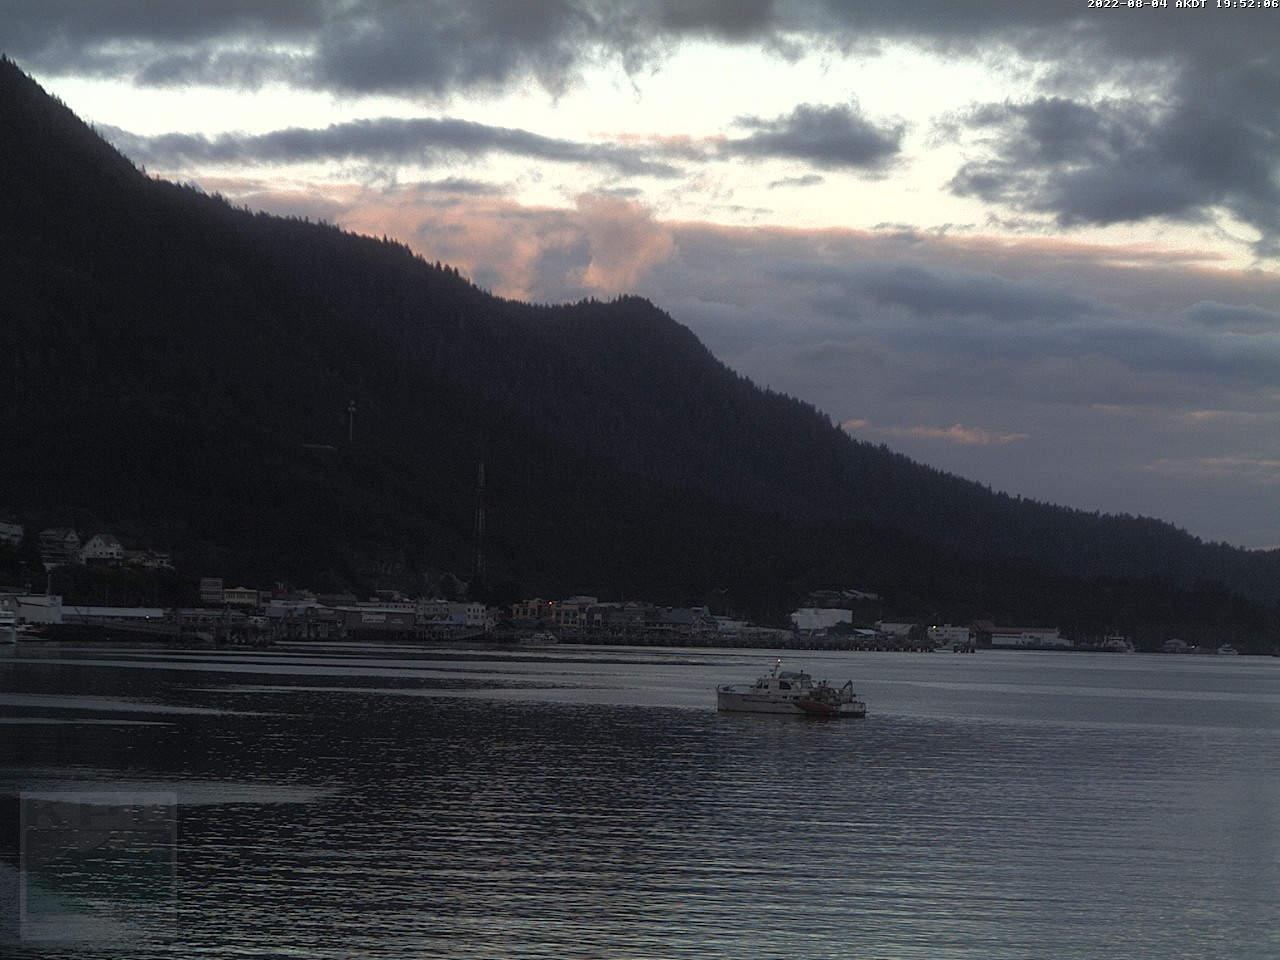 Ketchikan Webcam 3 pointing downtown